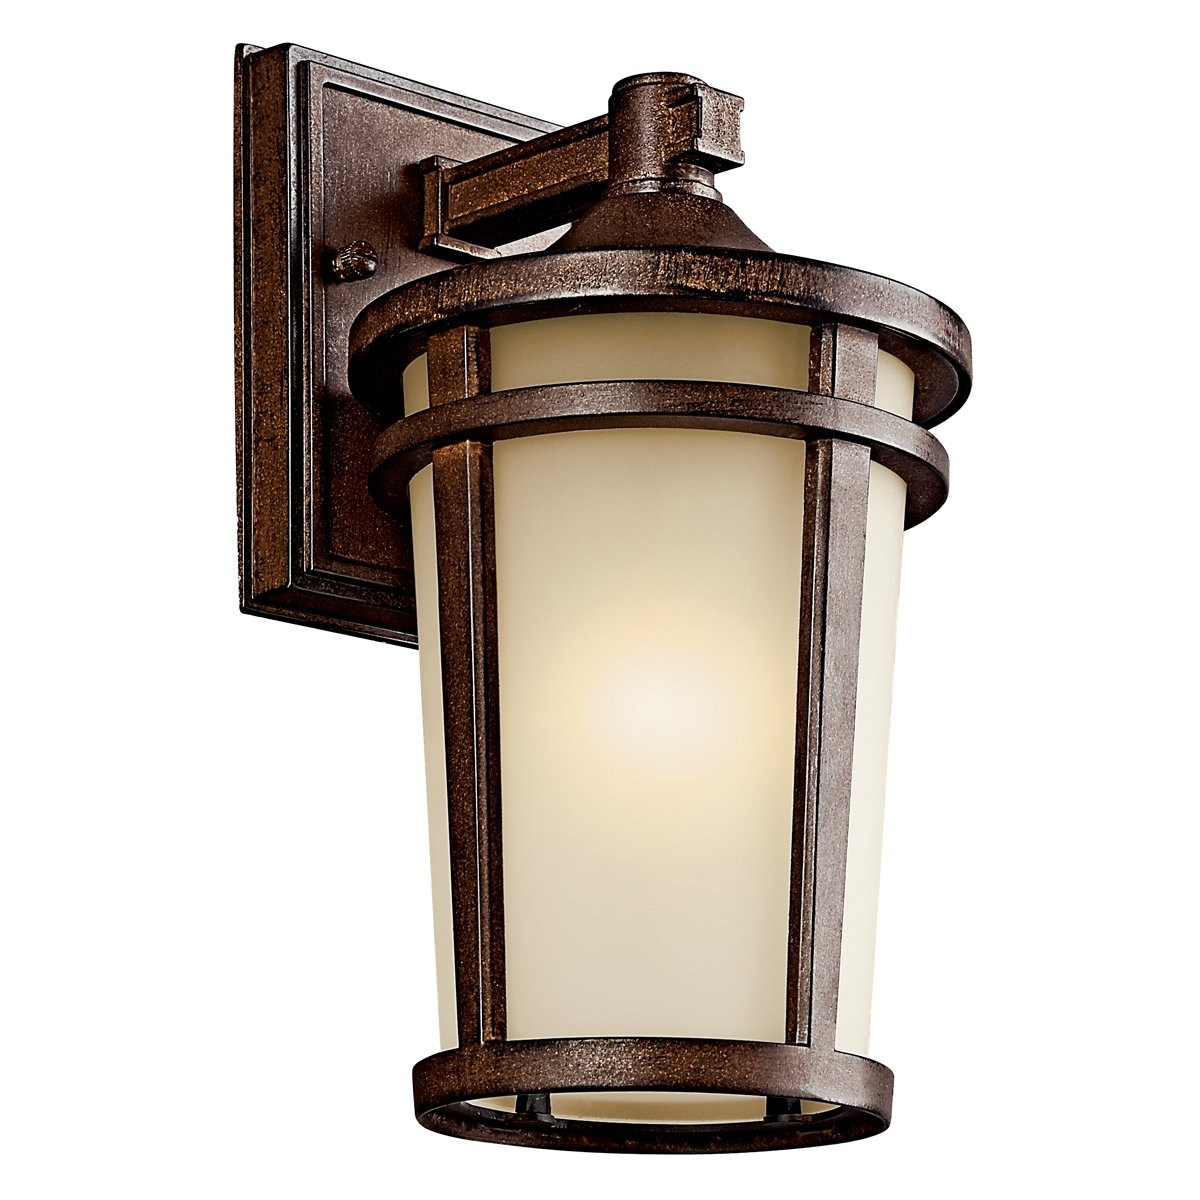 Kichler 49071BSTFL One Light Outdoor Wall Mount - Wall Porch Lights - Amazon.com  sc 1 st  Amazon.com & Kichler 49071BSTFL One Light Outdoor Wall Mount - Wall Porch ... azcodes.com